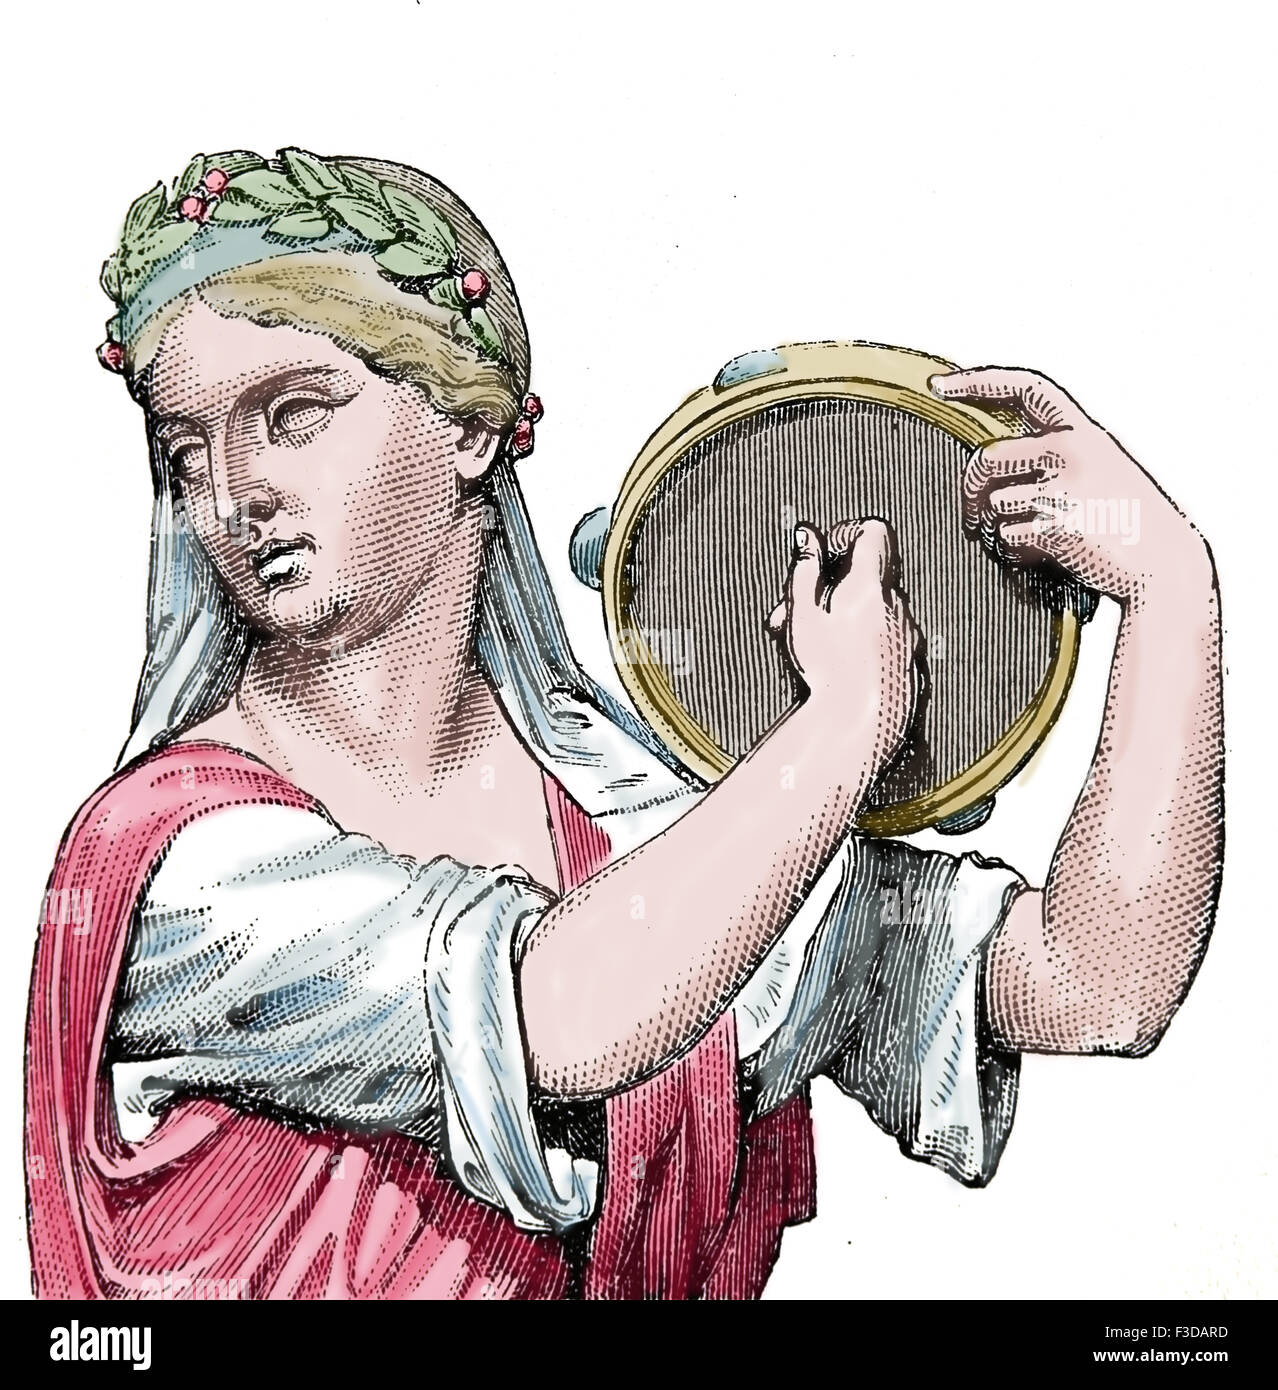 Ancient Age. Roman period. Playing tympanum. Type of tambourine. Engraving, 19th century. Later colouration. - Stock Image